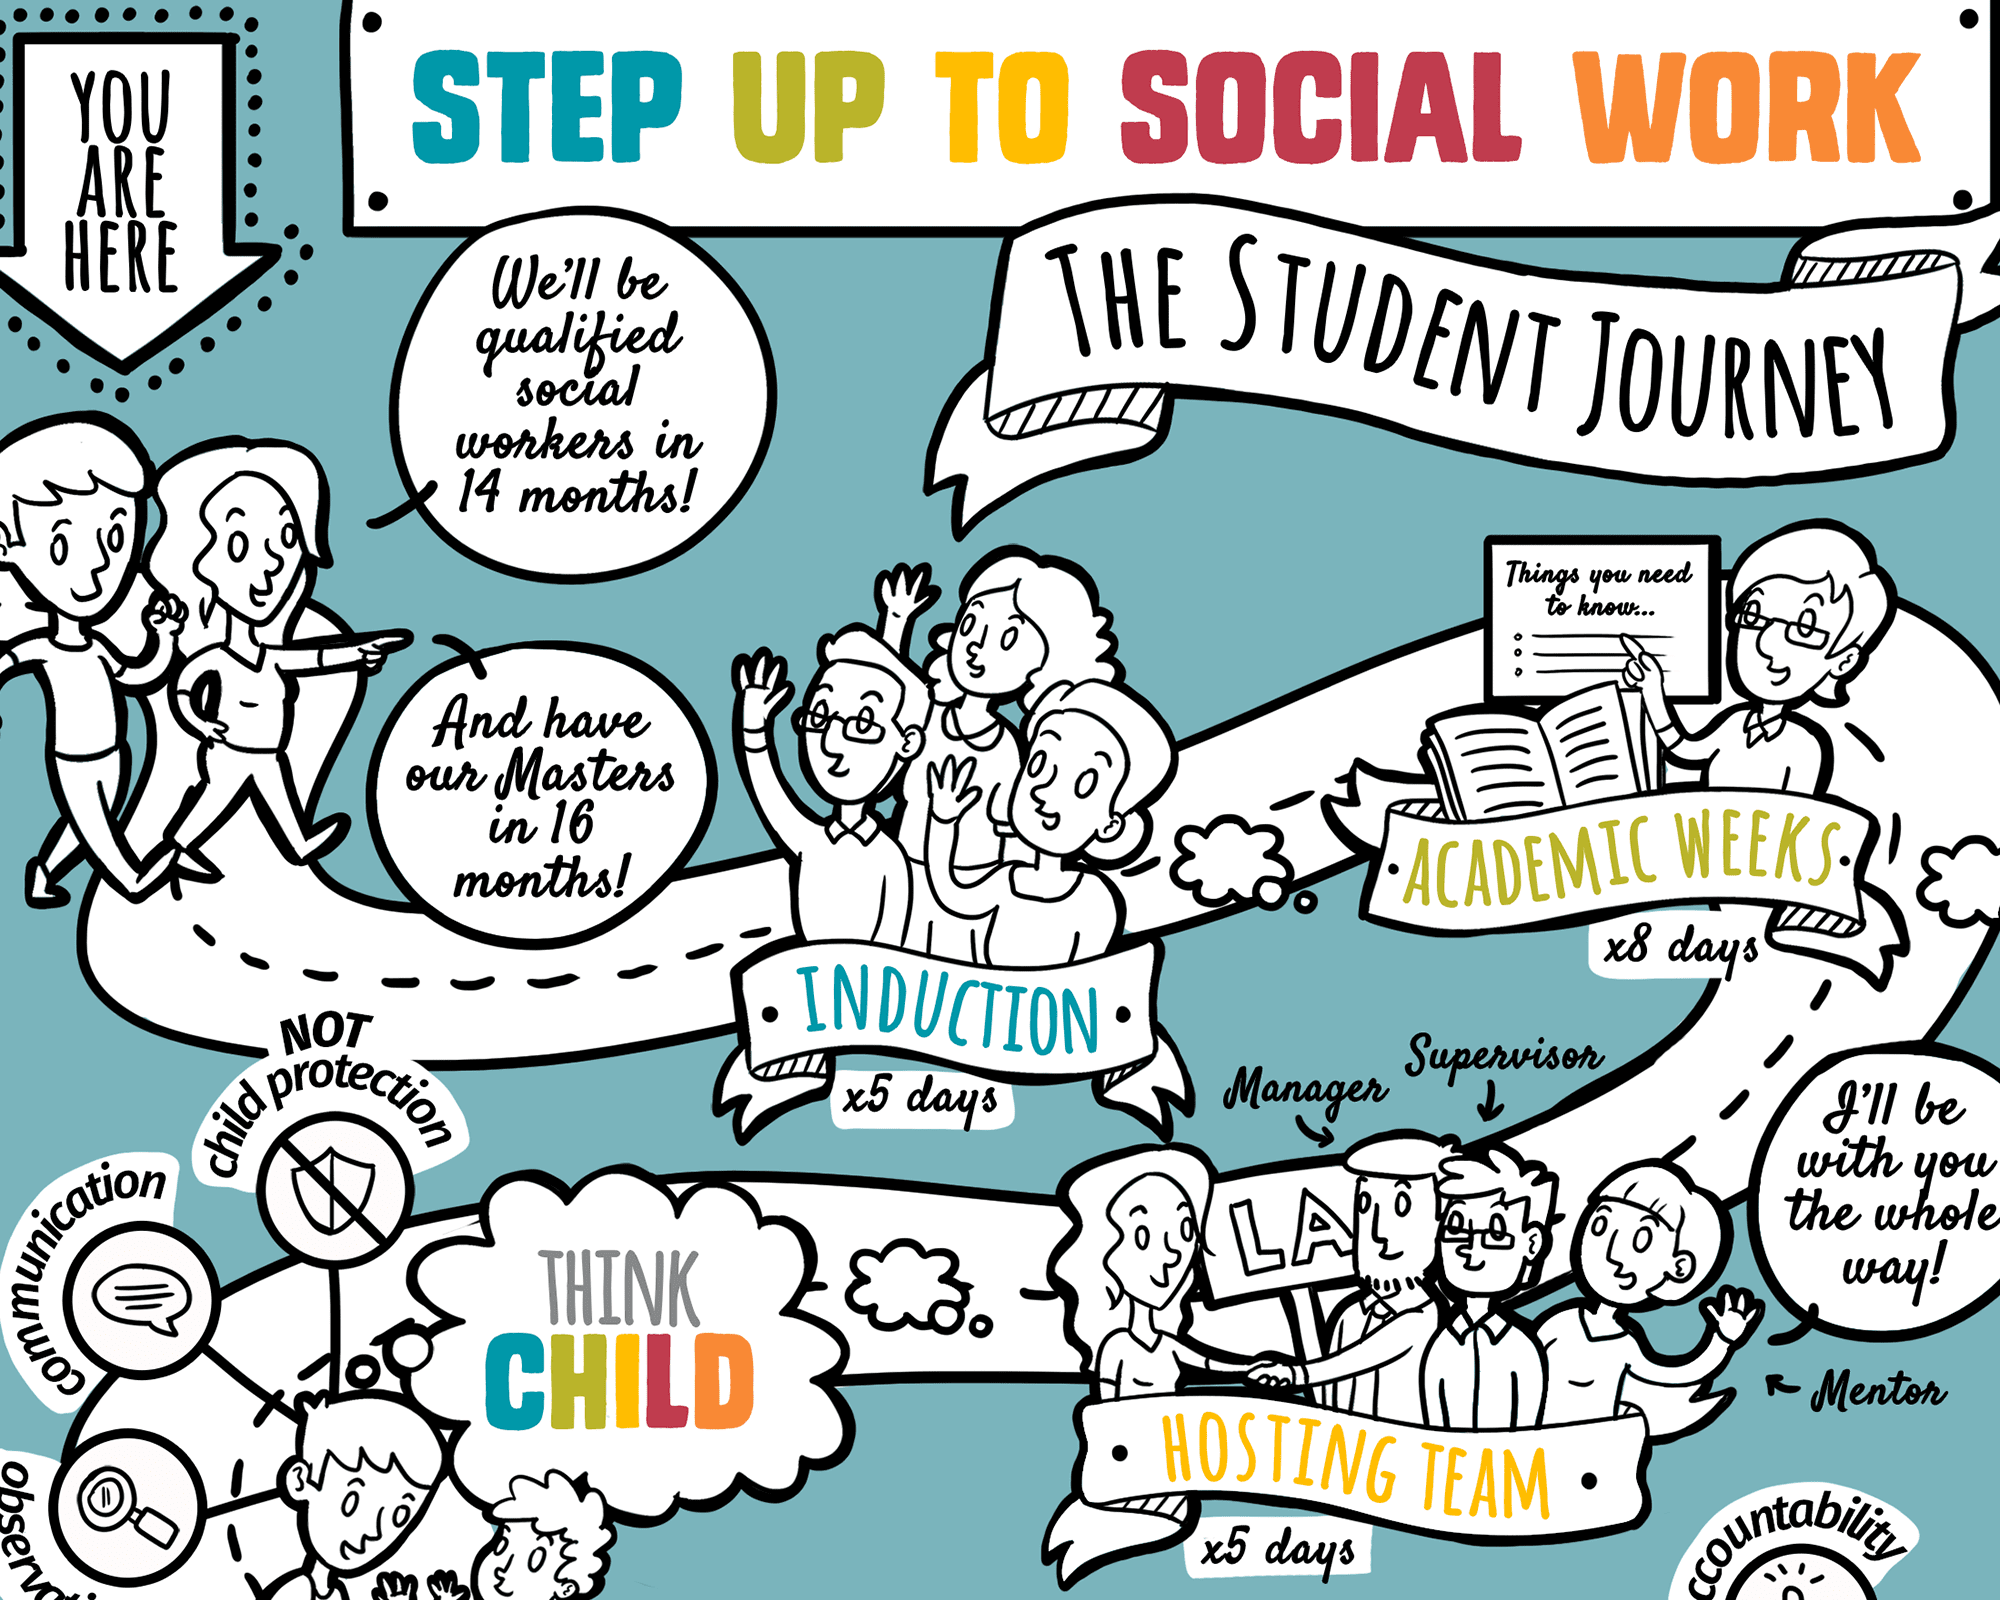 Step Up to Social Work infographic design featured image